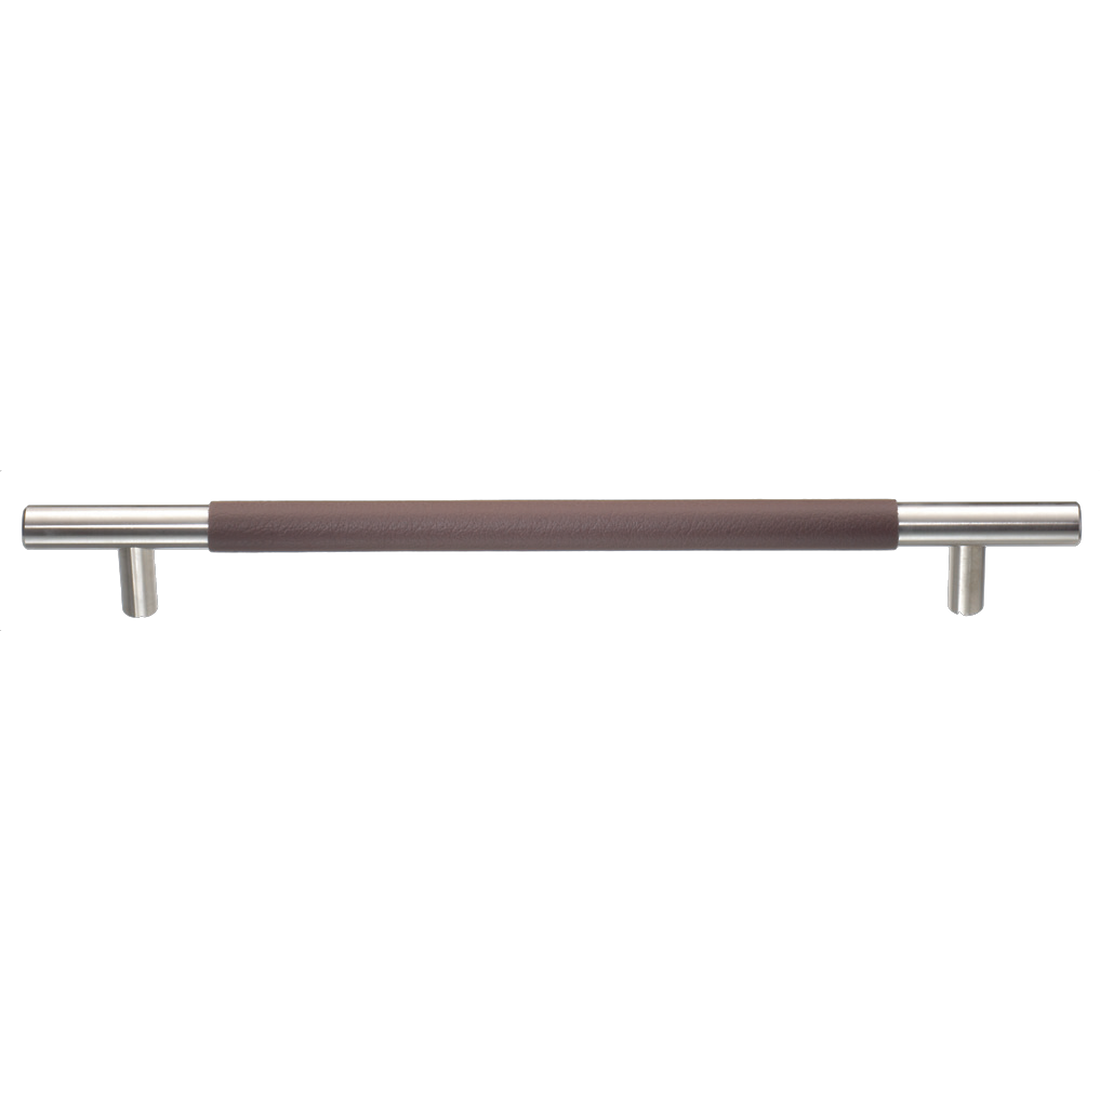 CERES BAR HANDLE ø 12MM, WITH PLAIN LEATHER, COCOA